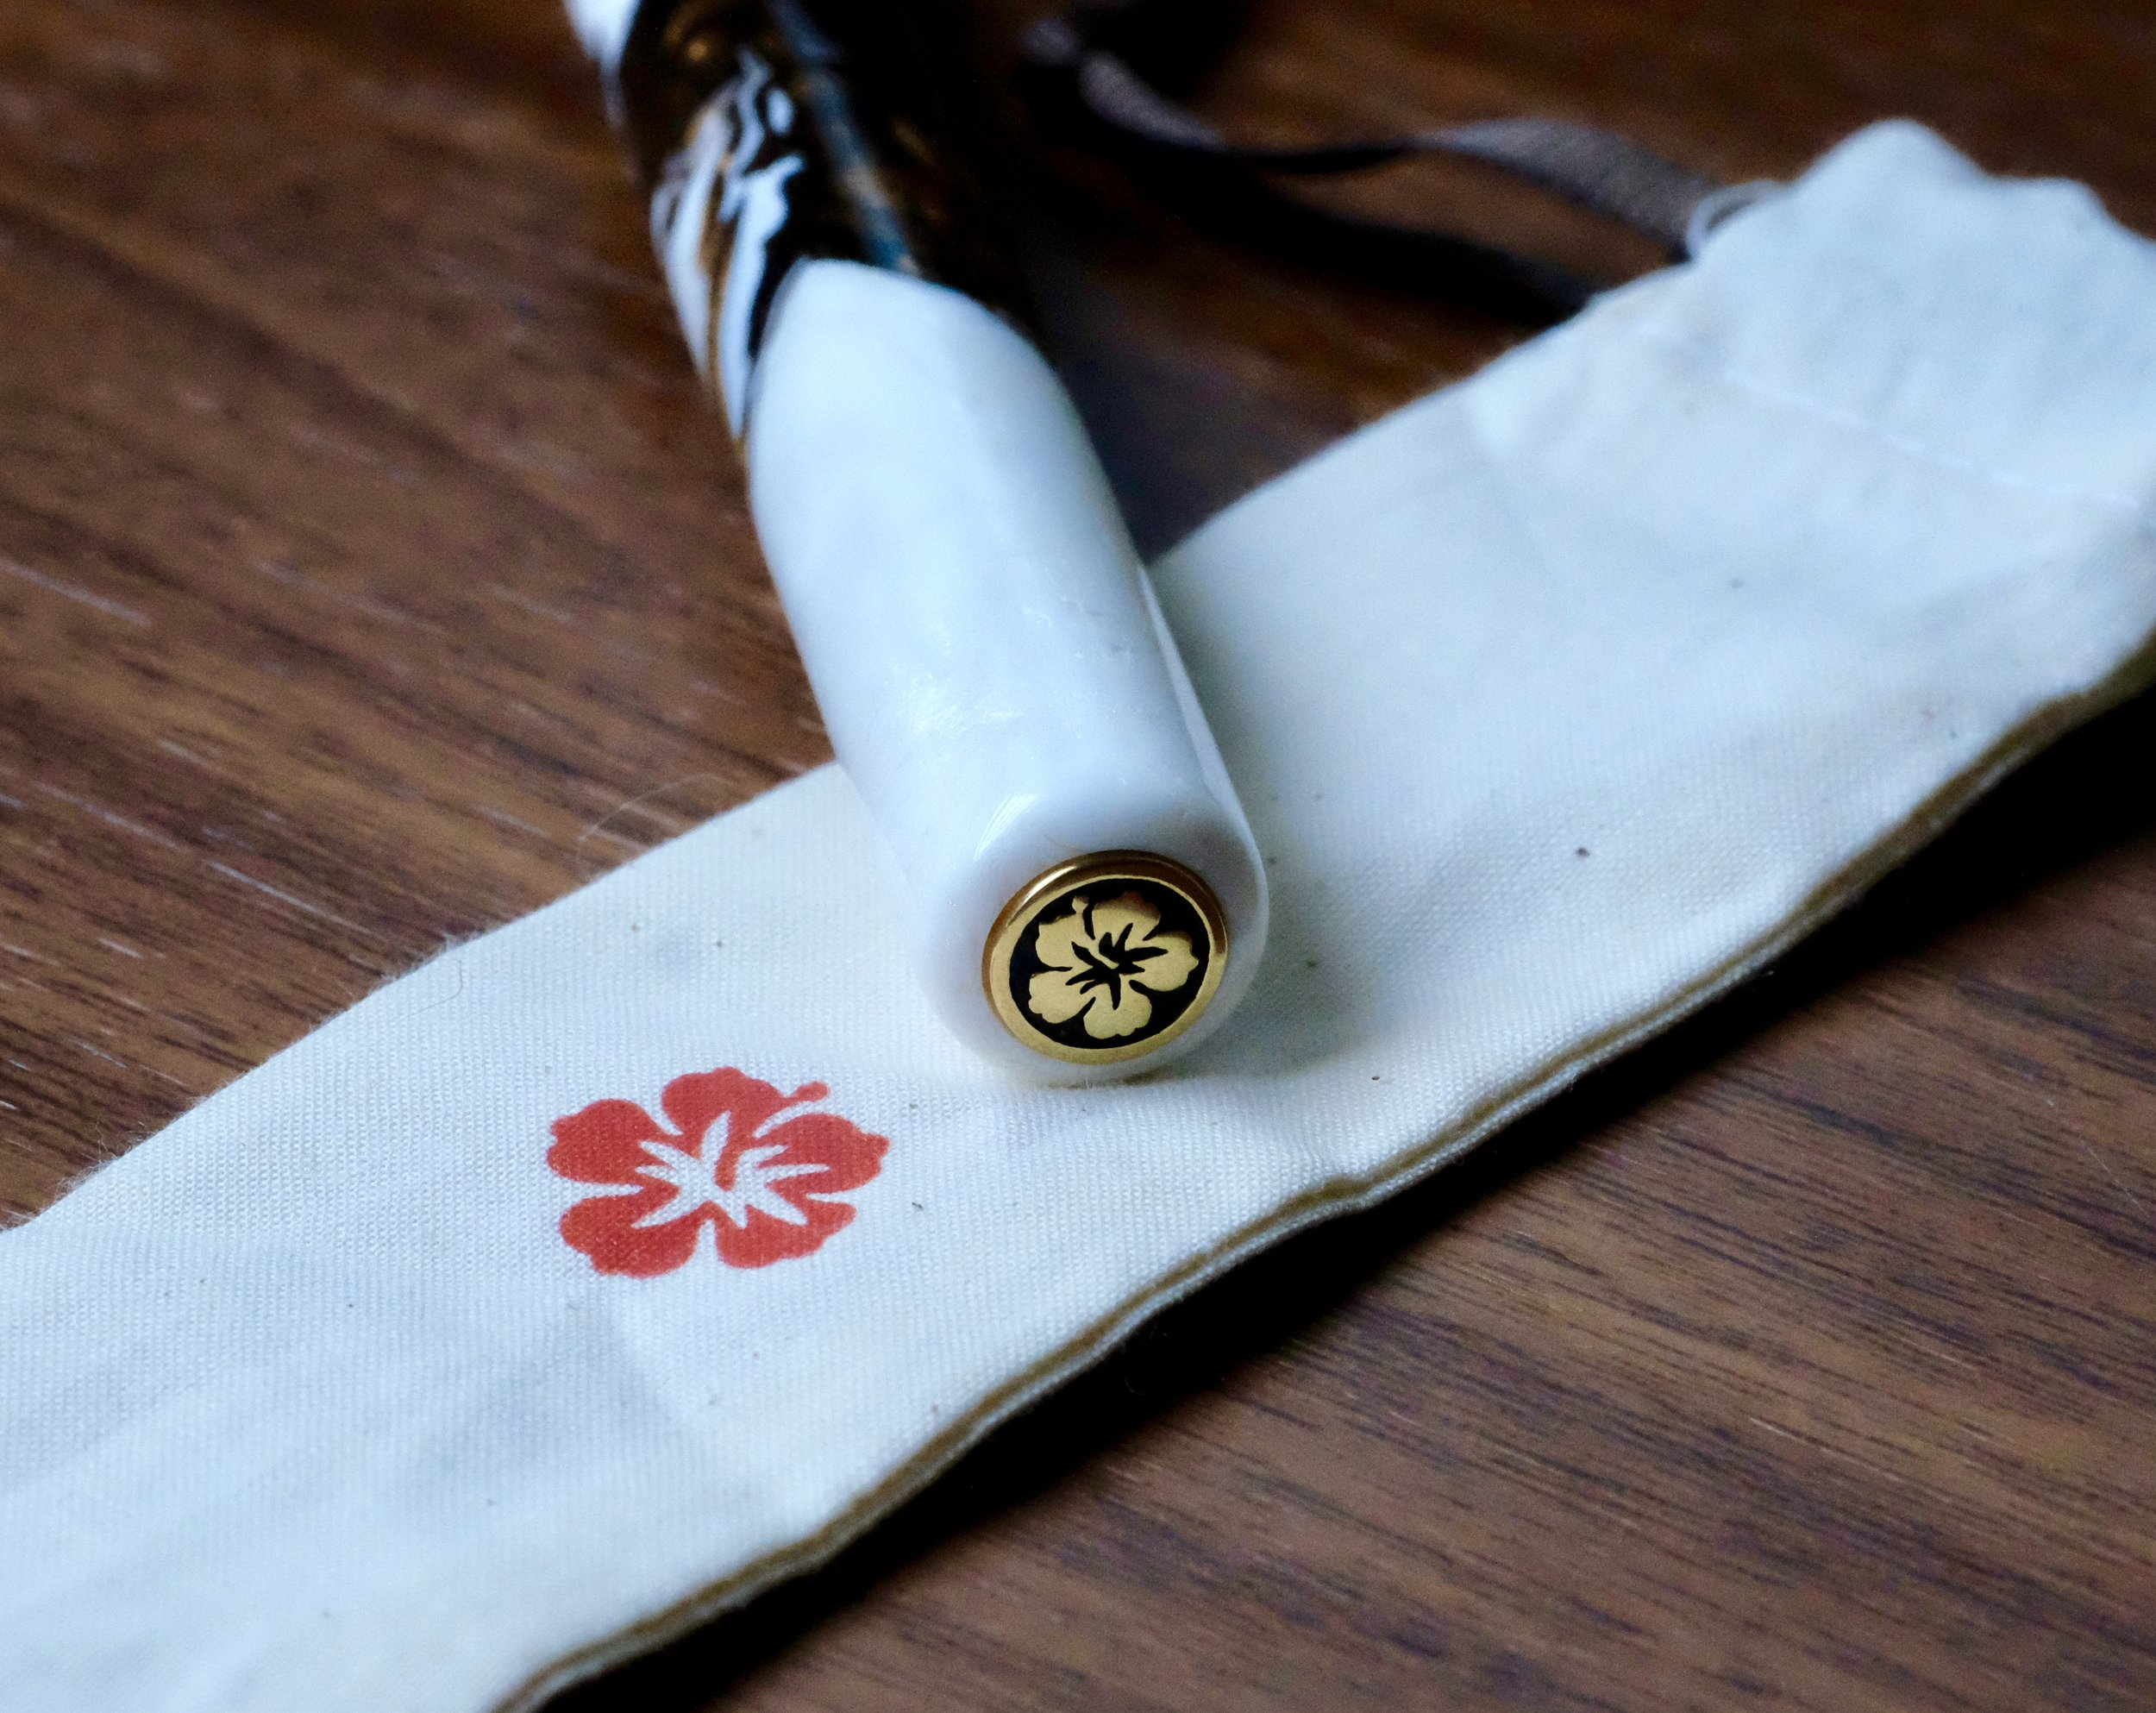 Each Kanilea pen features a sterling silver or plated sterling silver medallion inset into the cap.